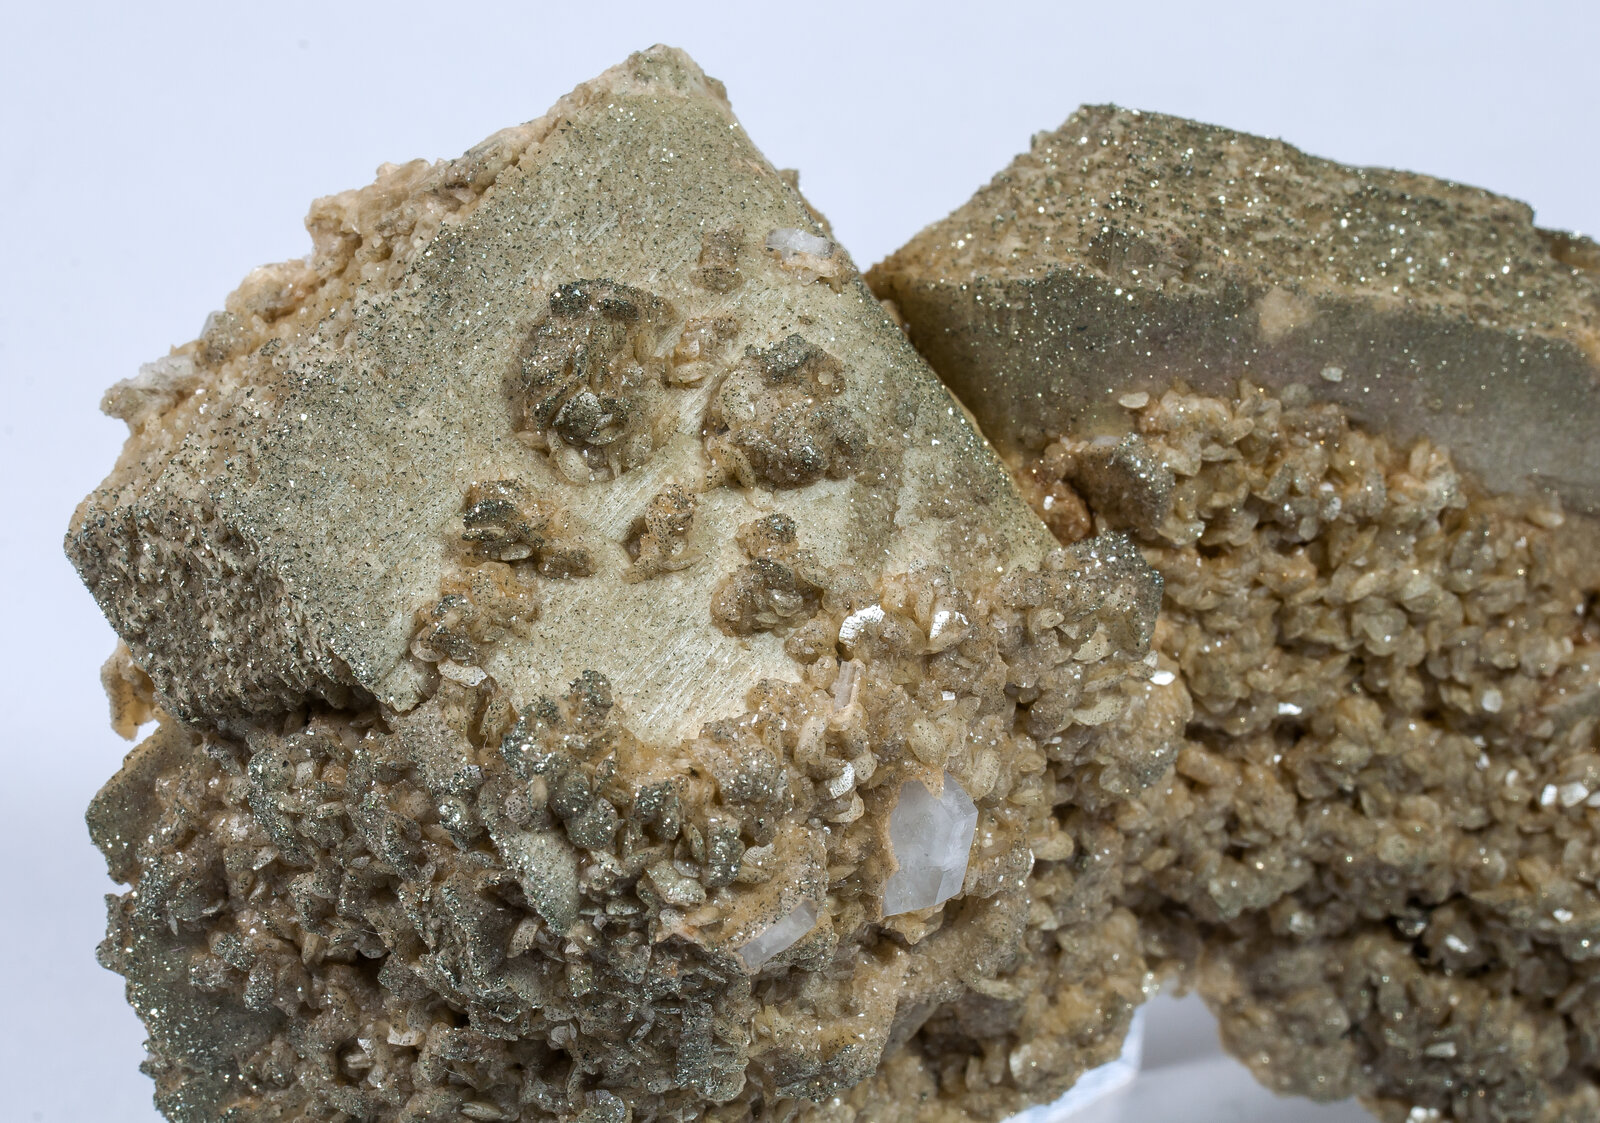 specimens/s_imagesAM8/Siderite-NR16AM8d.jpg